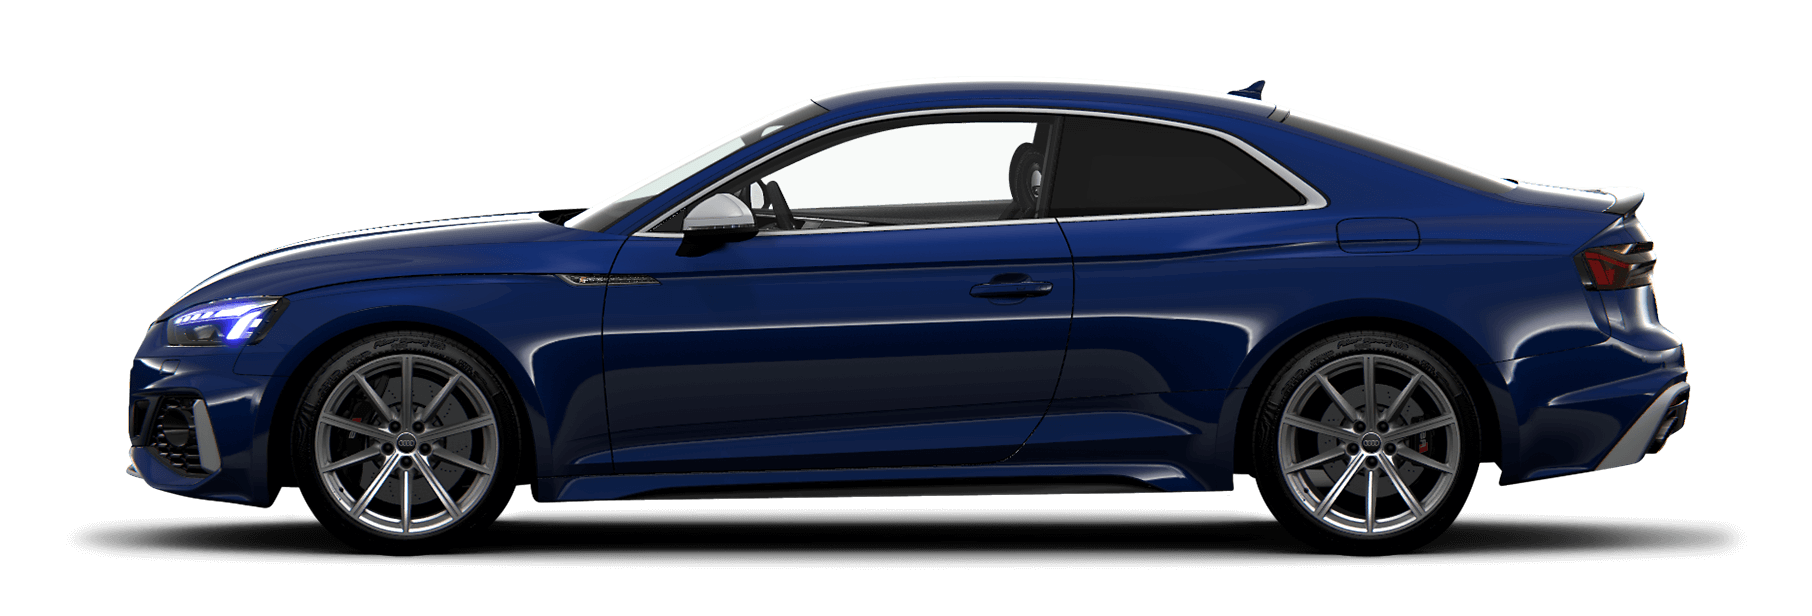 https://cogcms-images.azureedge.net/media/36770/rs5-coupe-mains.png